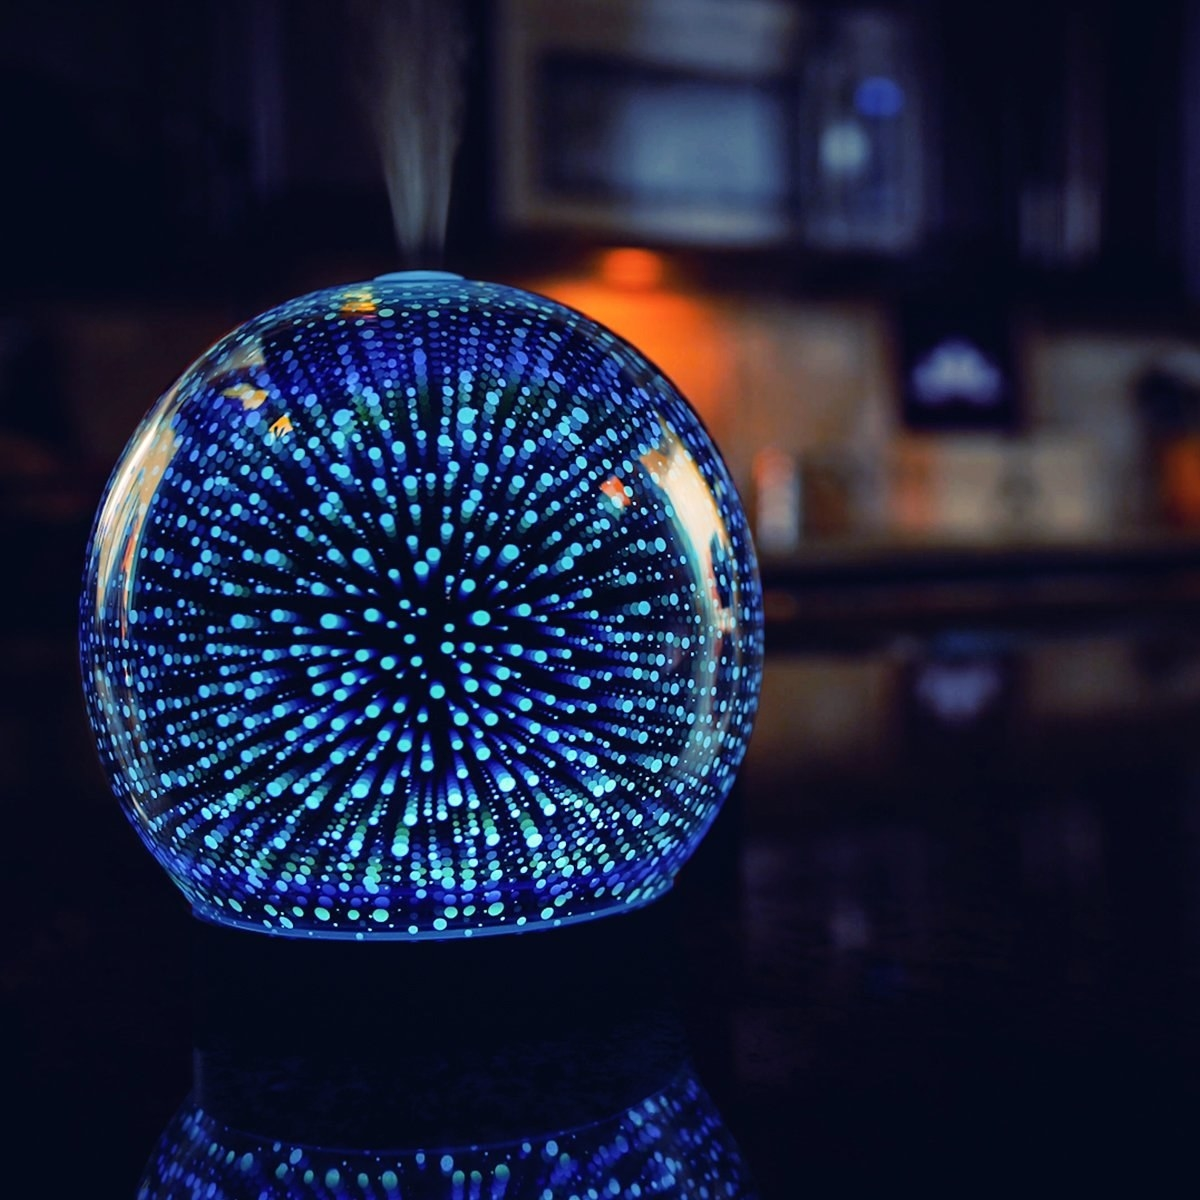 Orb-shaped diffuser with blue and green galaxy-style LED lights